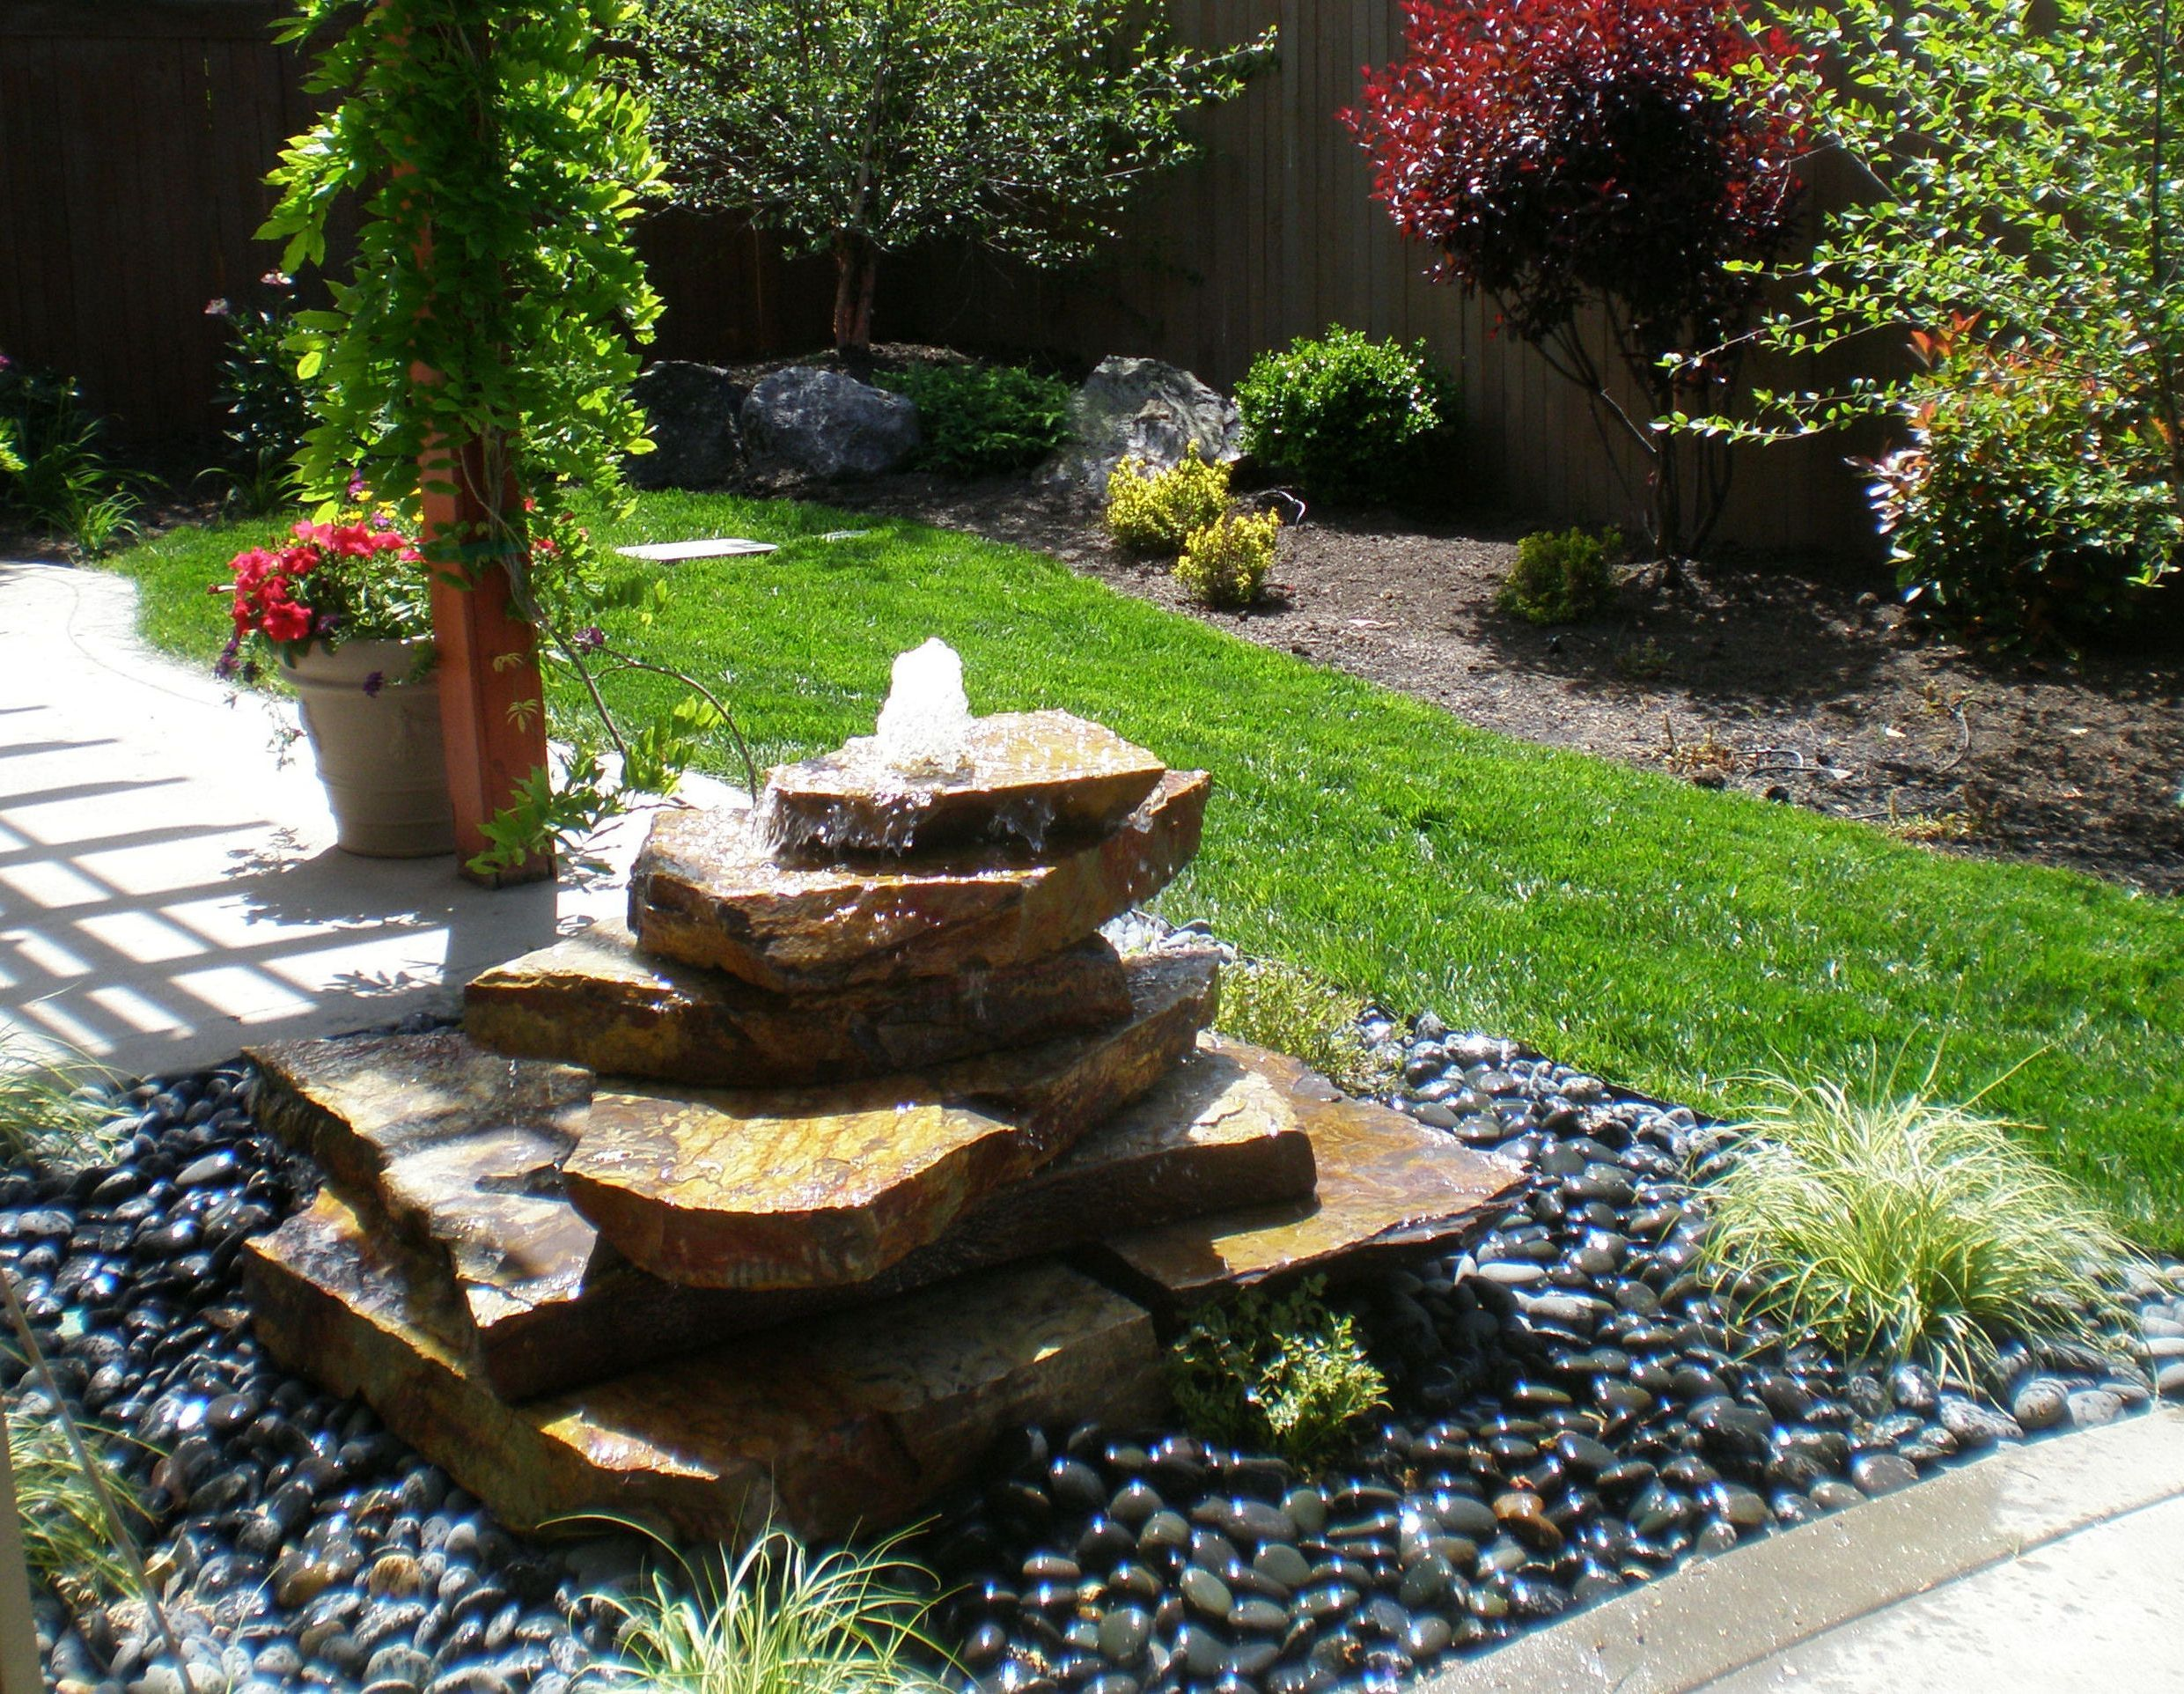 Decoration Adorable Outdoor Water Fountains Design With Natural